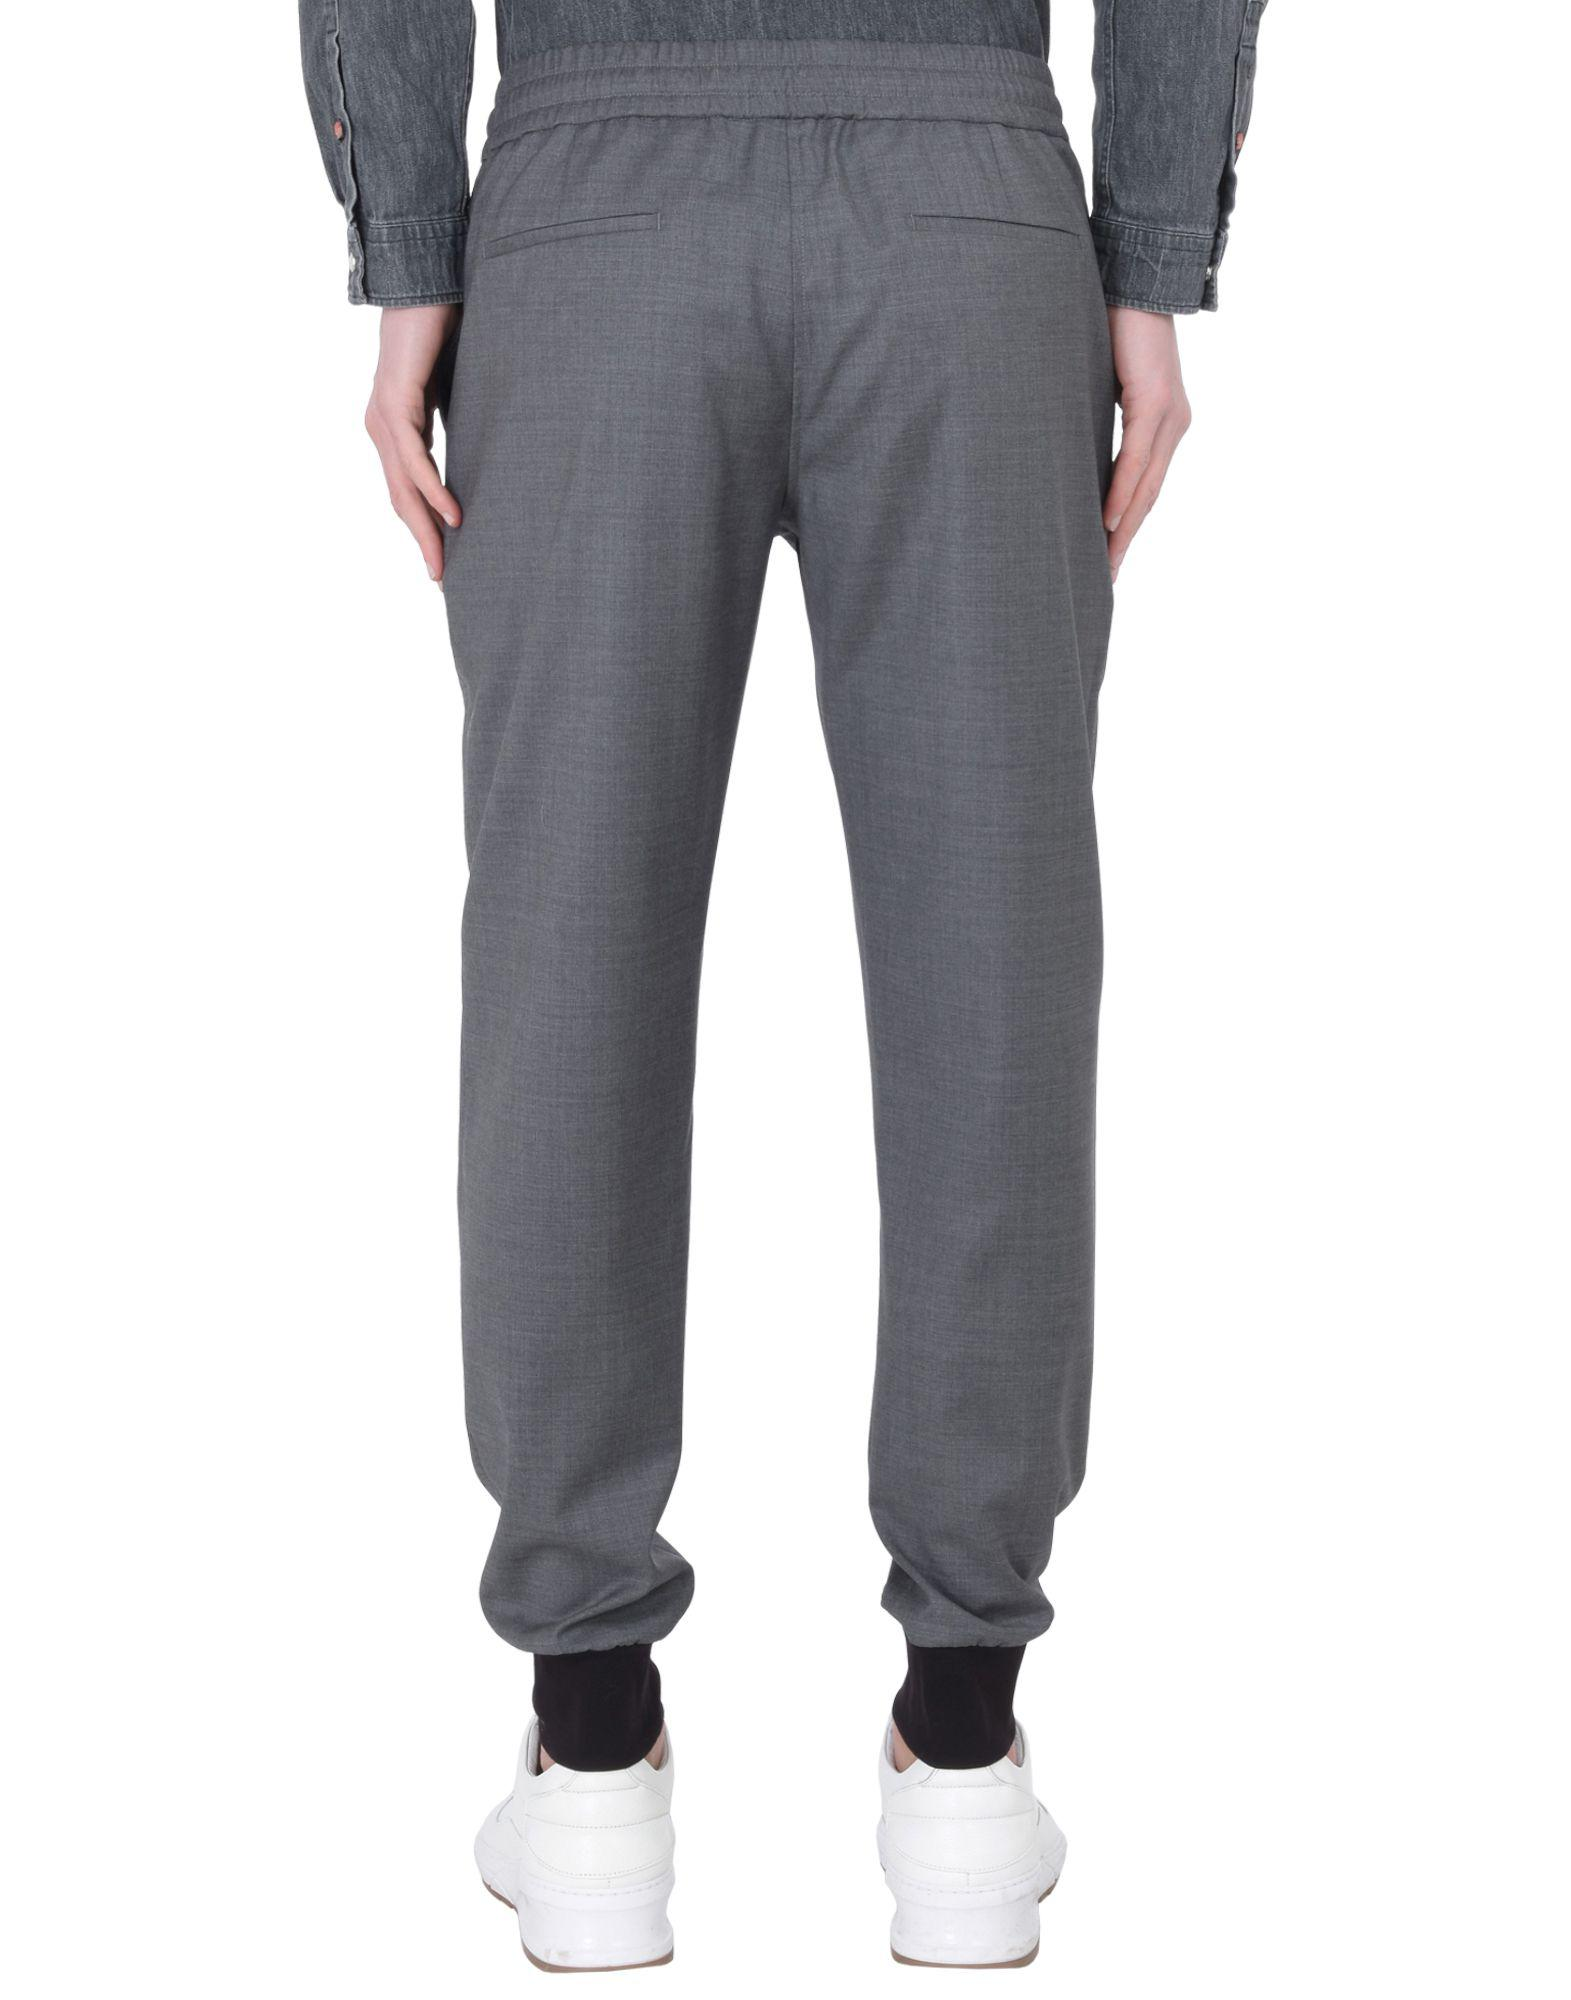 PS by Paul Smith Wool Casual Trouser in Grey (Grey) for Men